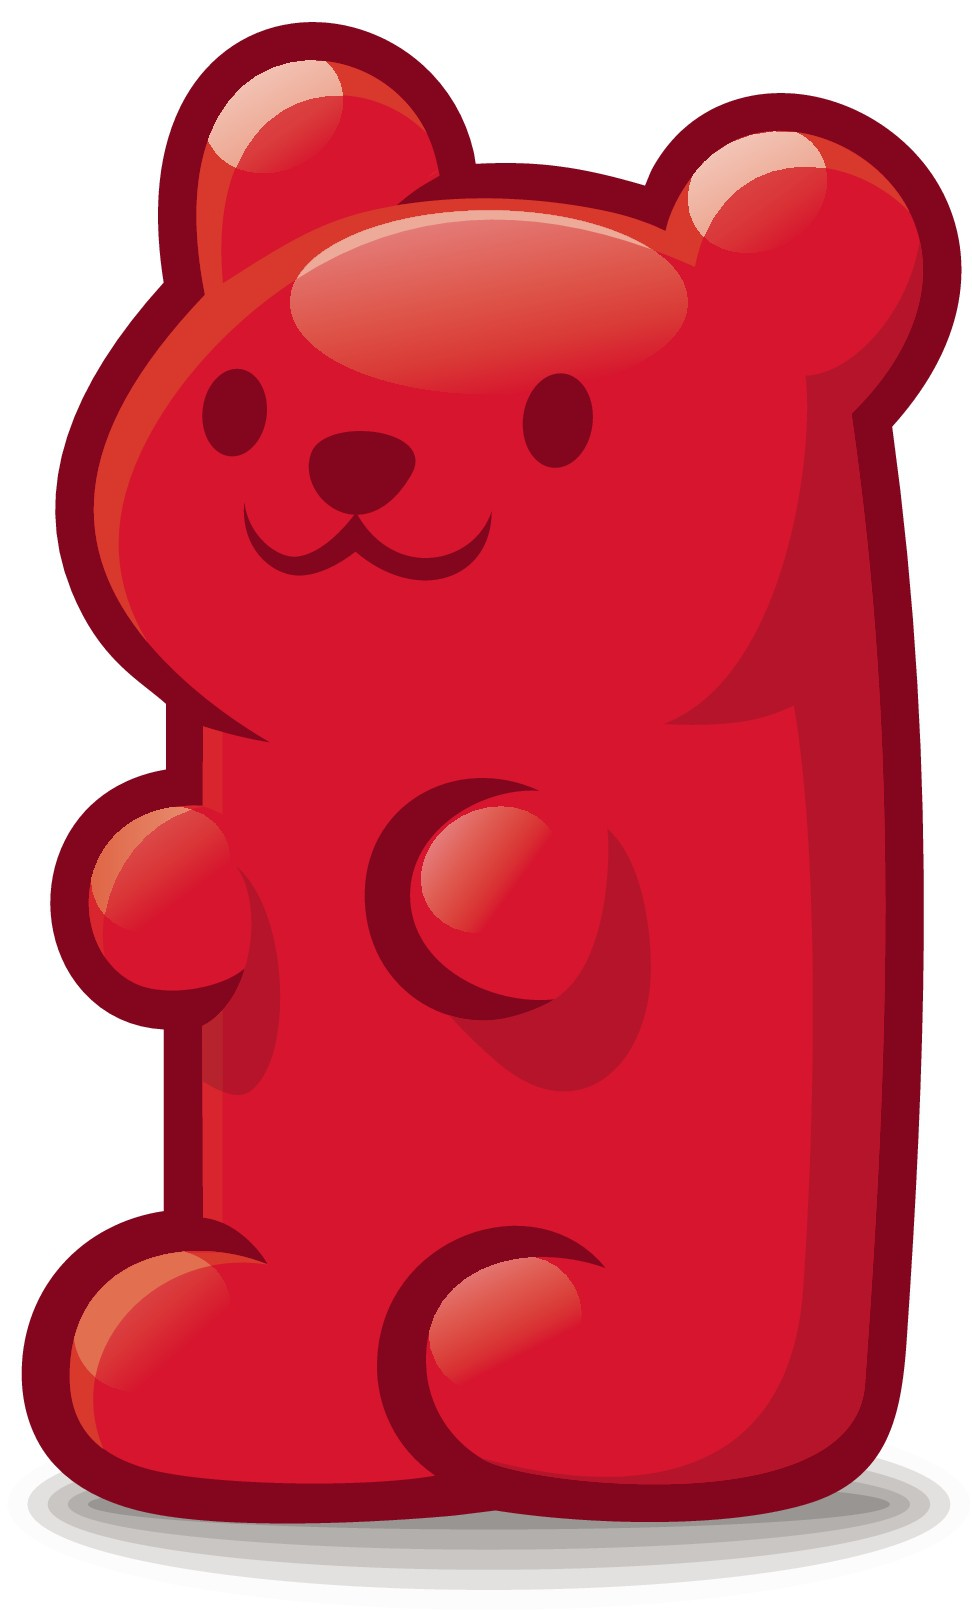 Panda Rojo Challenge (must be a red gummy bear not the animal)